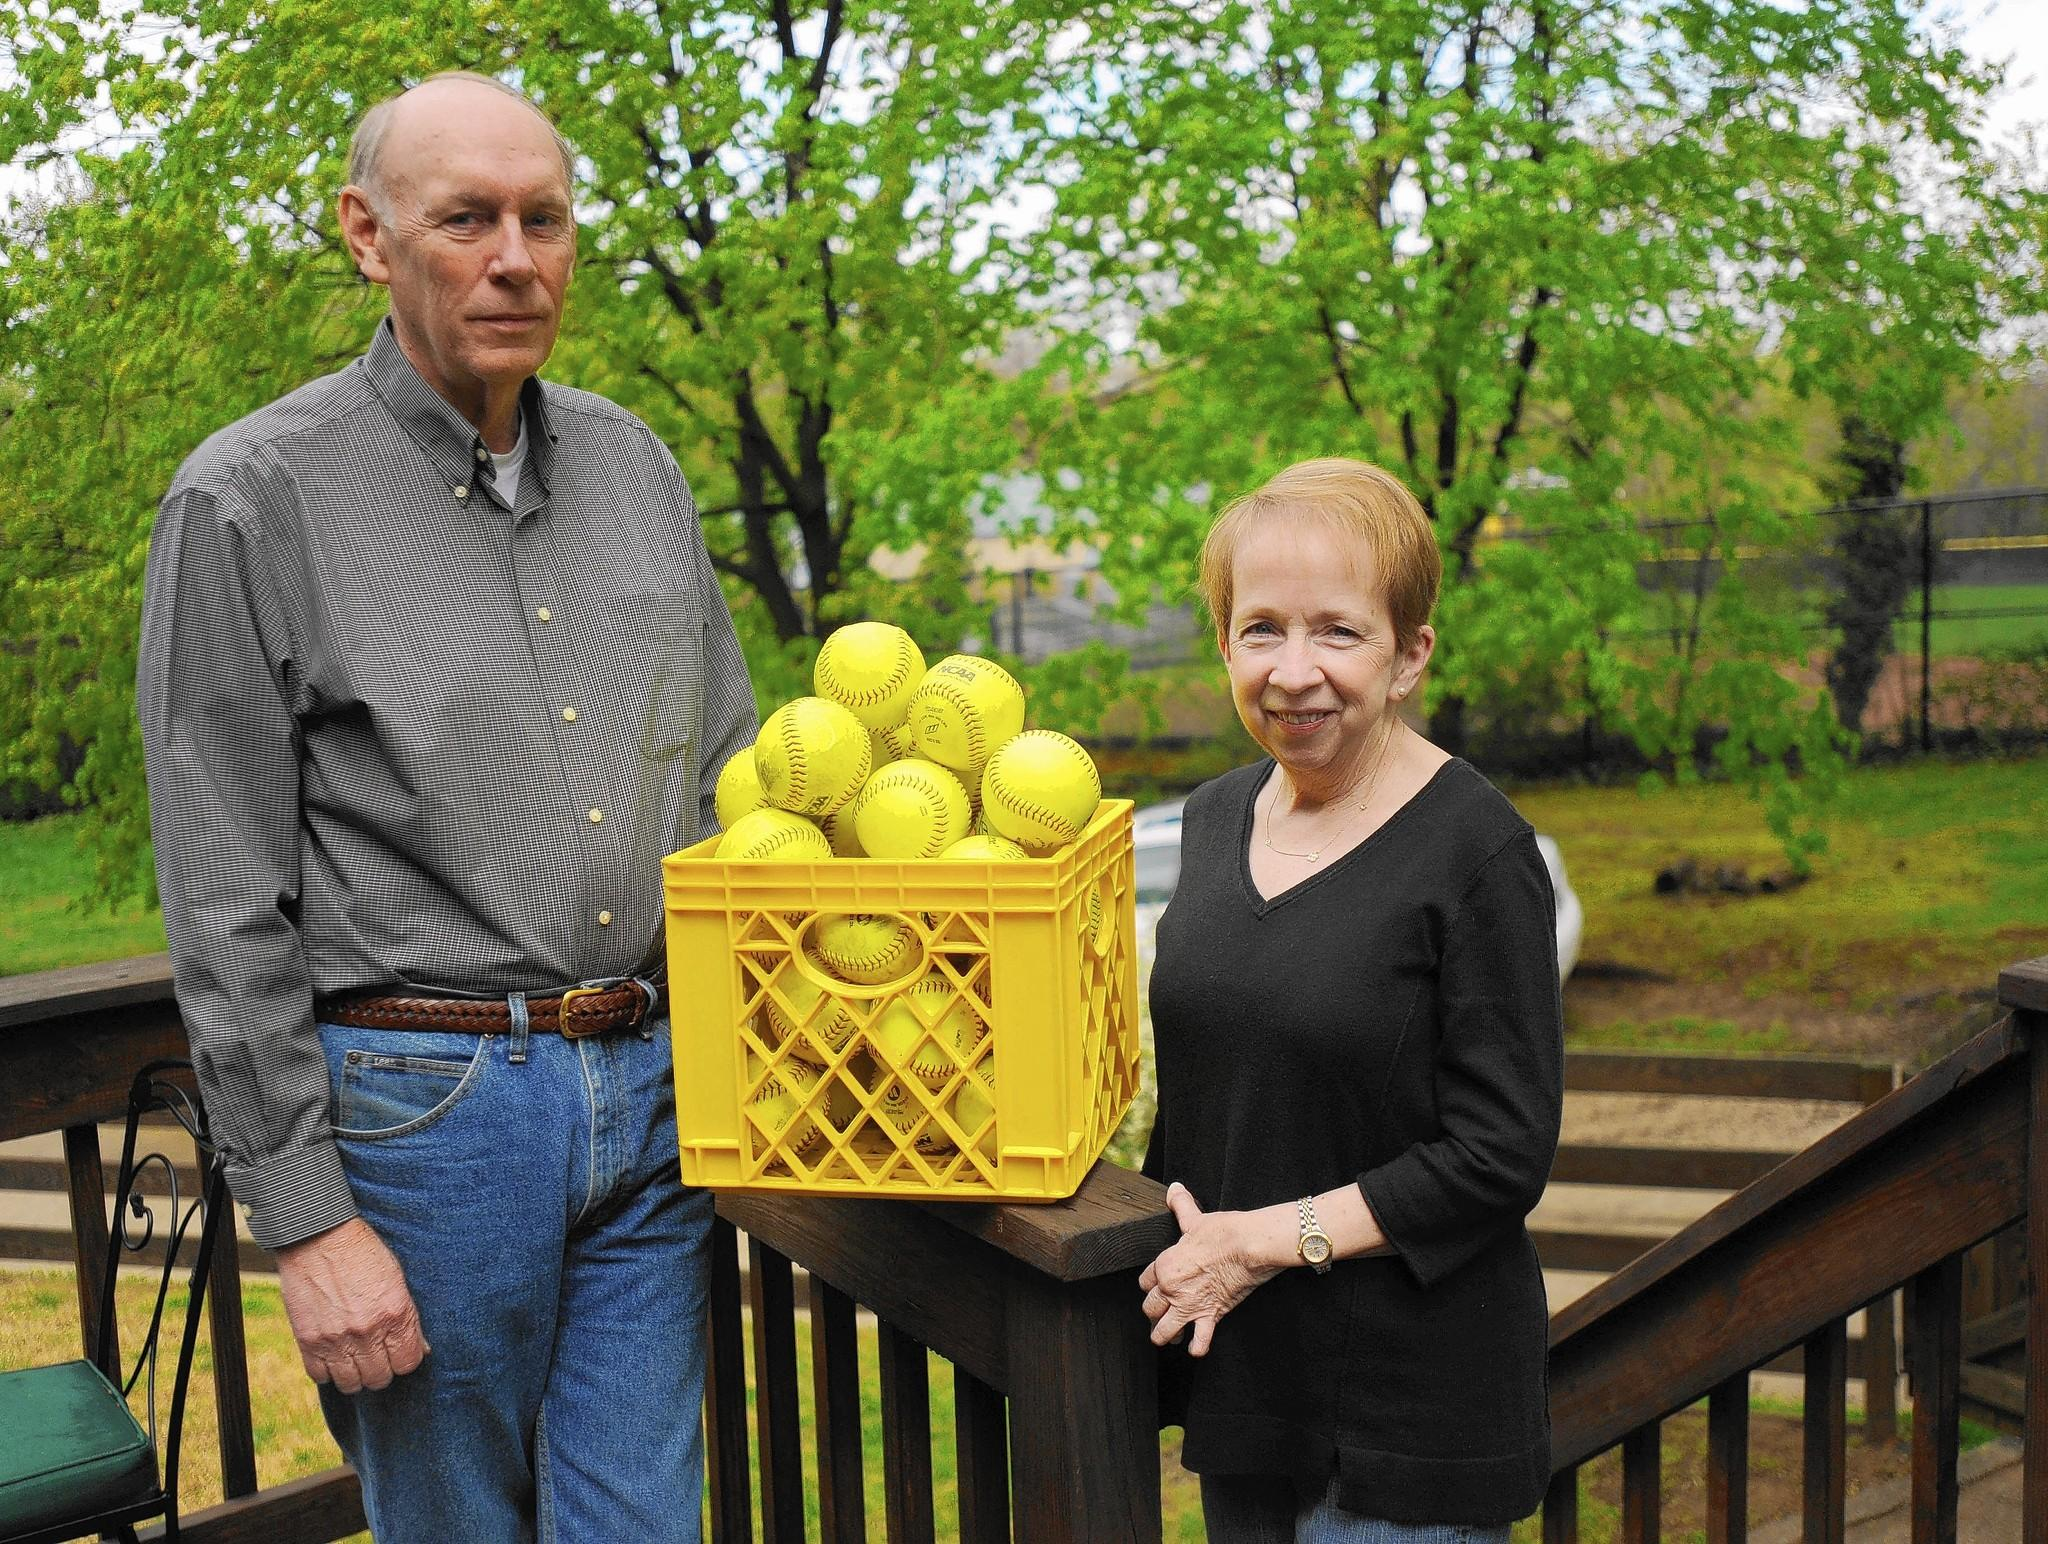 Jerry and Beth Truelove show the collection of softballs that have landed in or near their Stanmore Court yard in Rodgers Forge from adjacent Towson University. The Trueloves and some of their neighbors are negotiating with Towson University on a women's softball stadium planned at TU that they say will affect their quality of life.